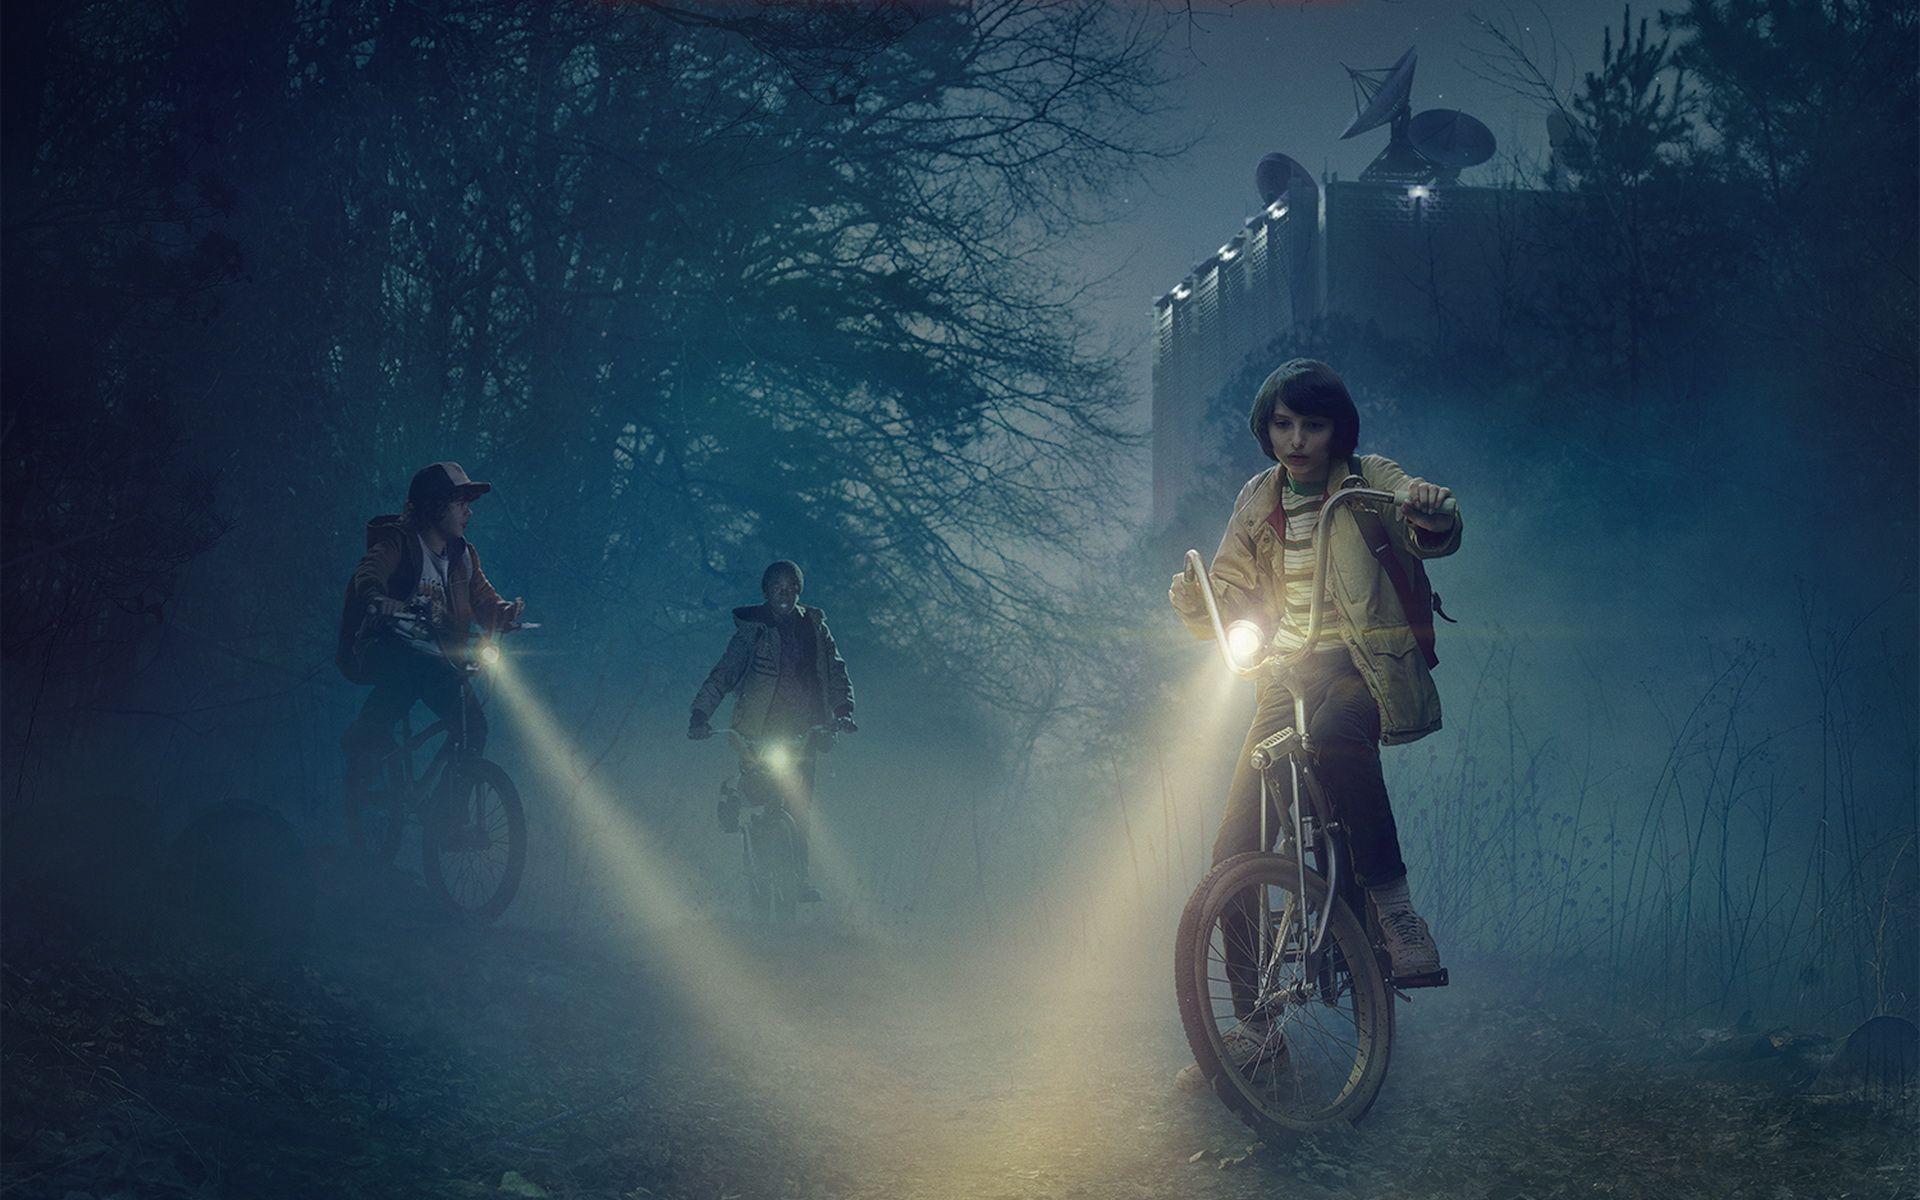 free stranger things images